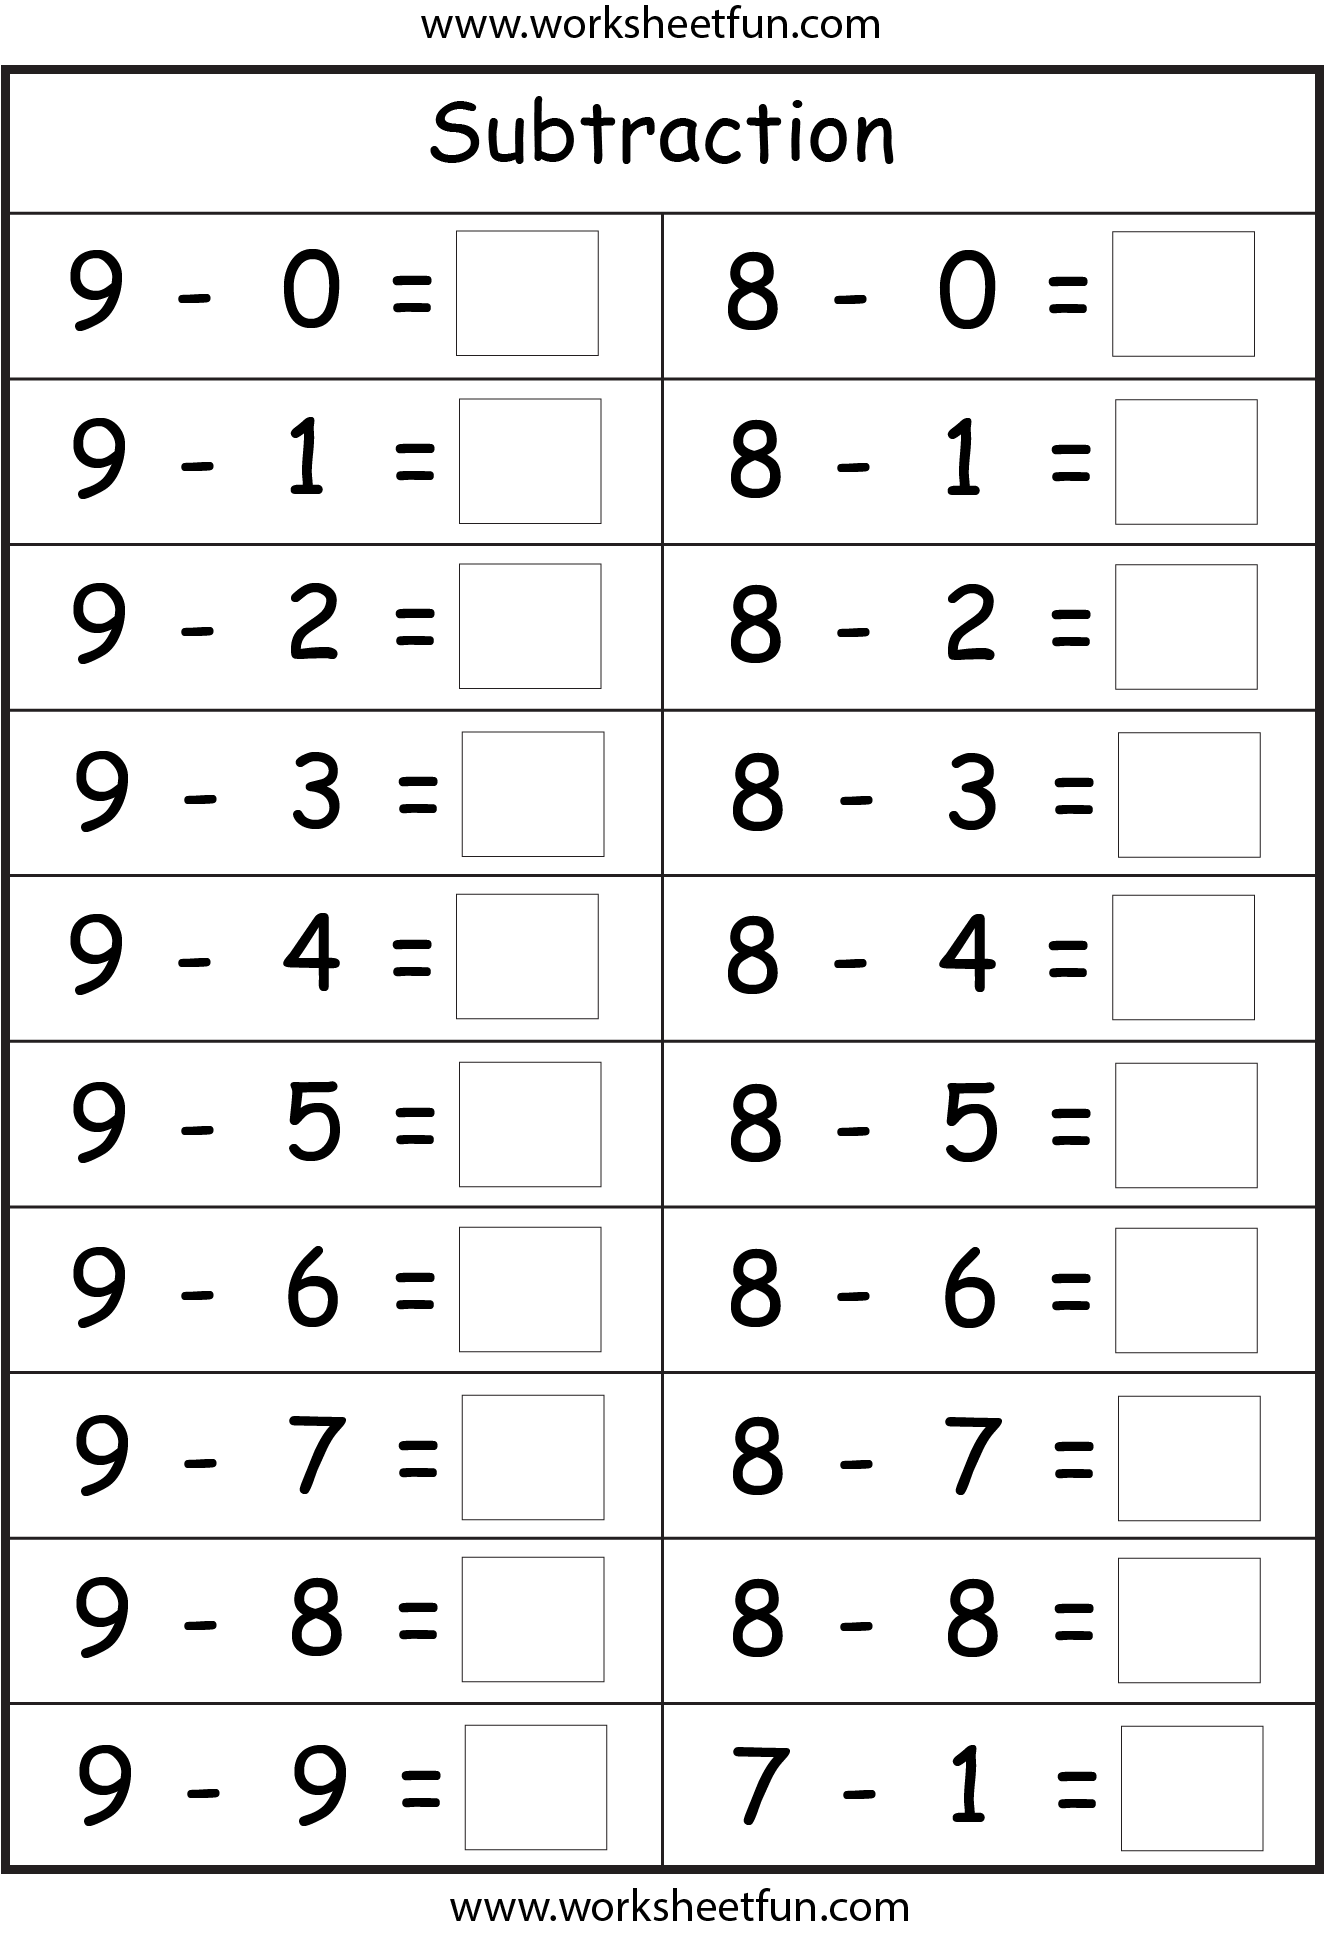 Subtraction 4 Worksheets Printable Worksheets – Subtraction Kindergarten Worksheets